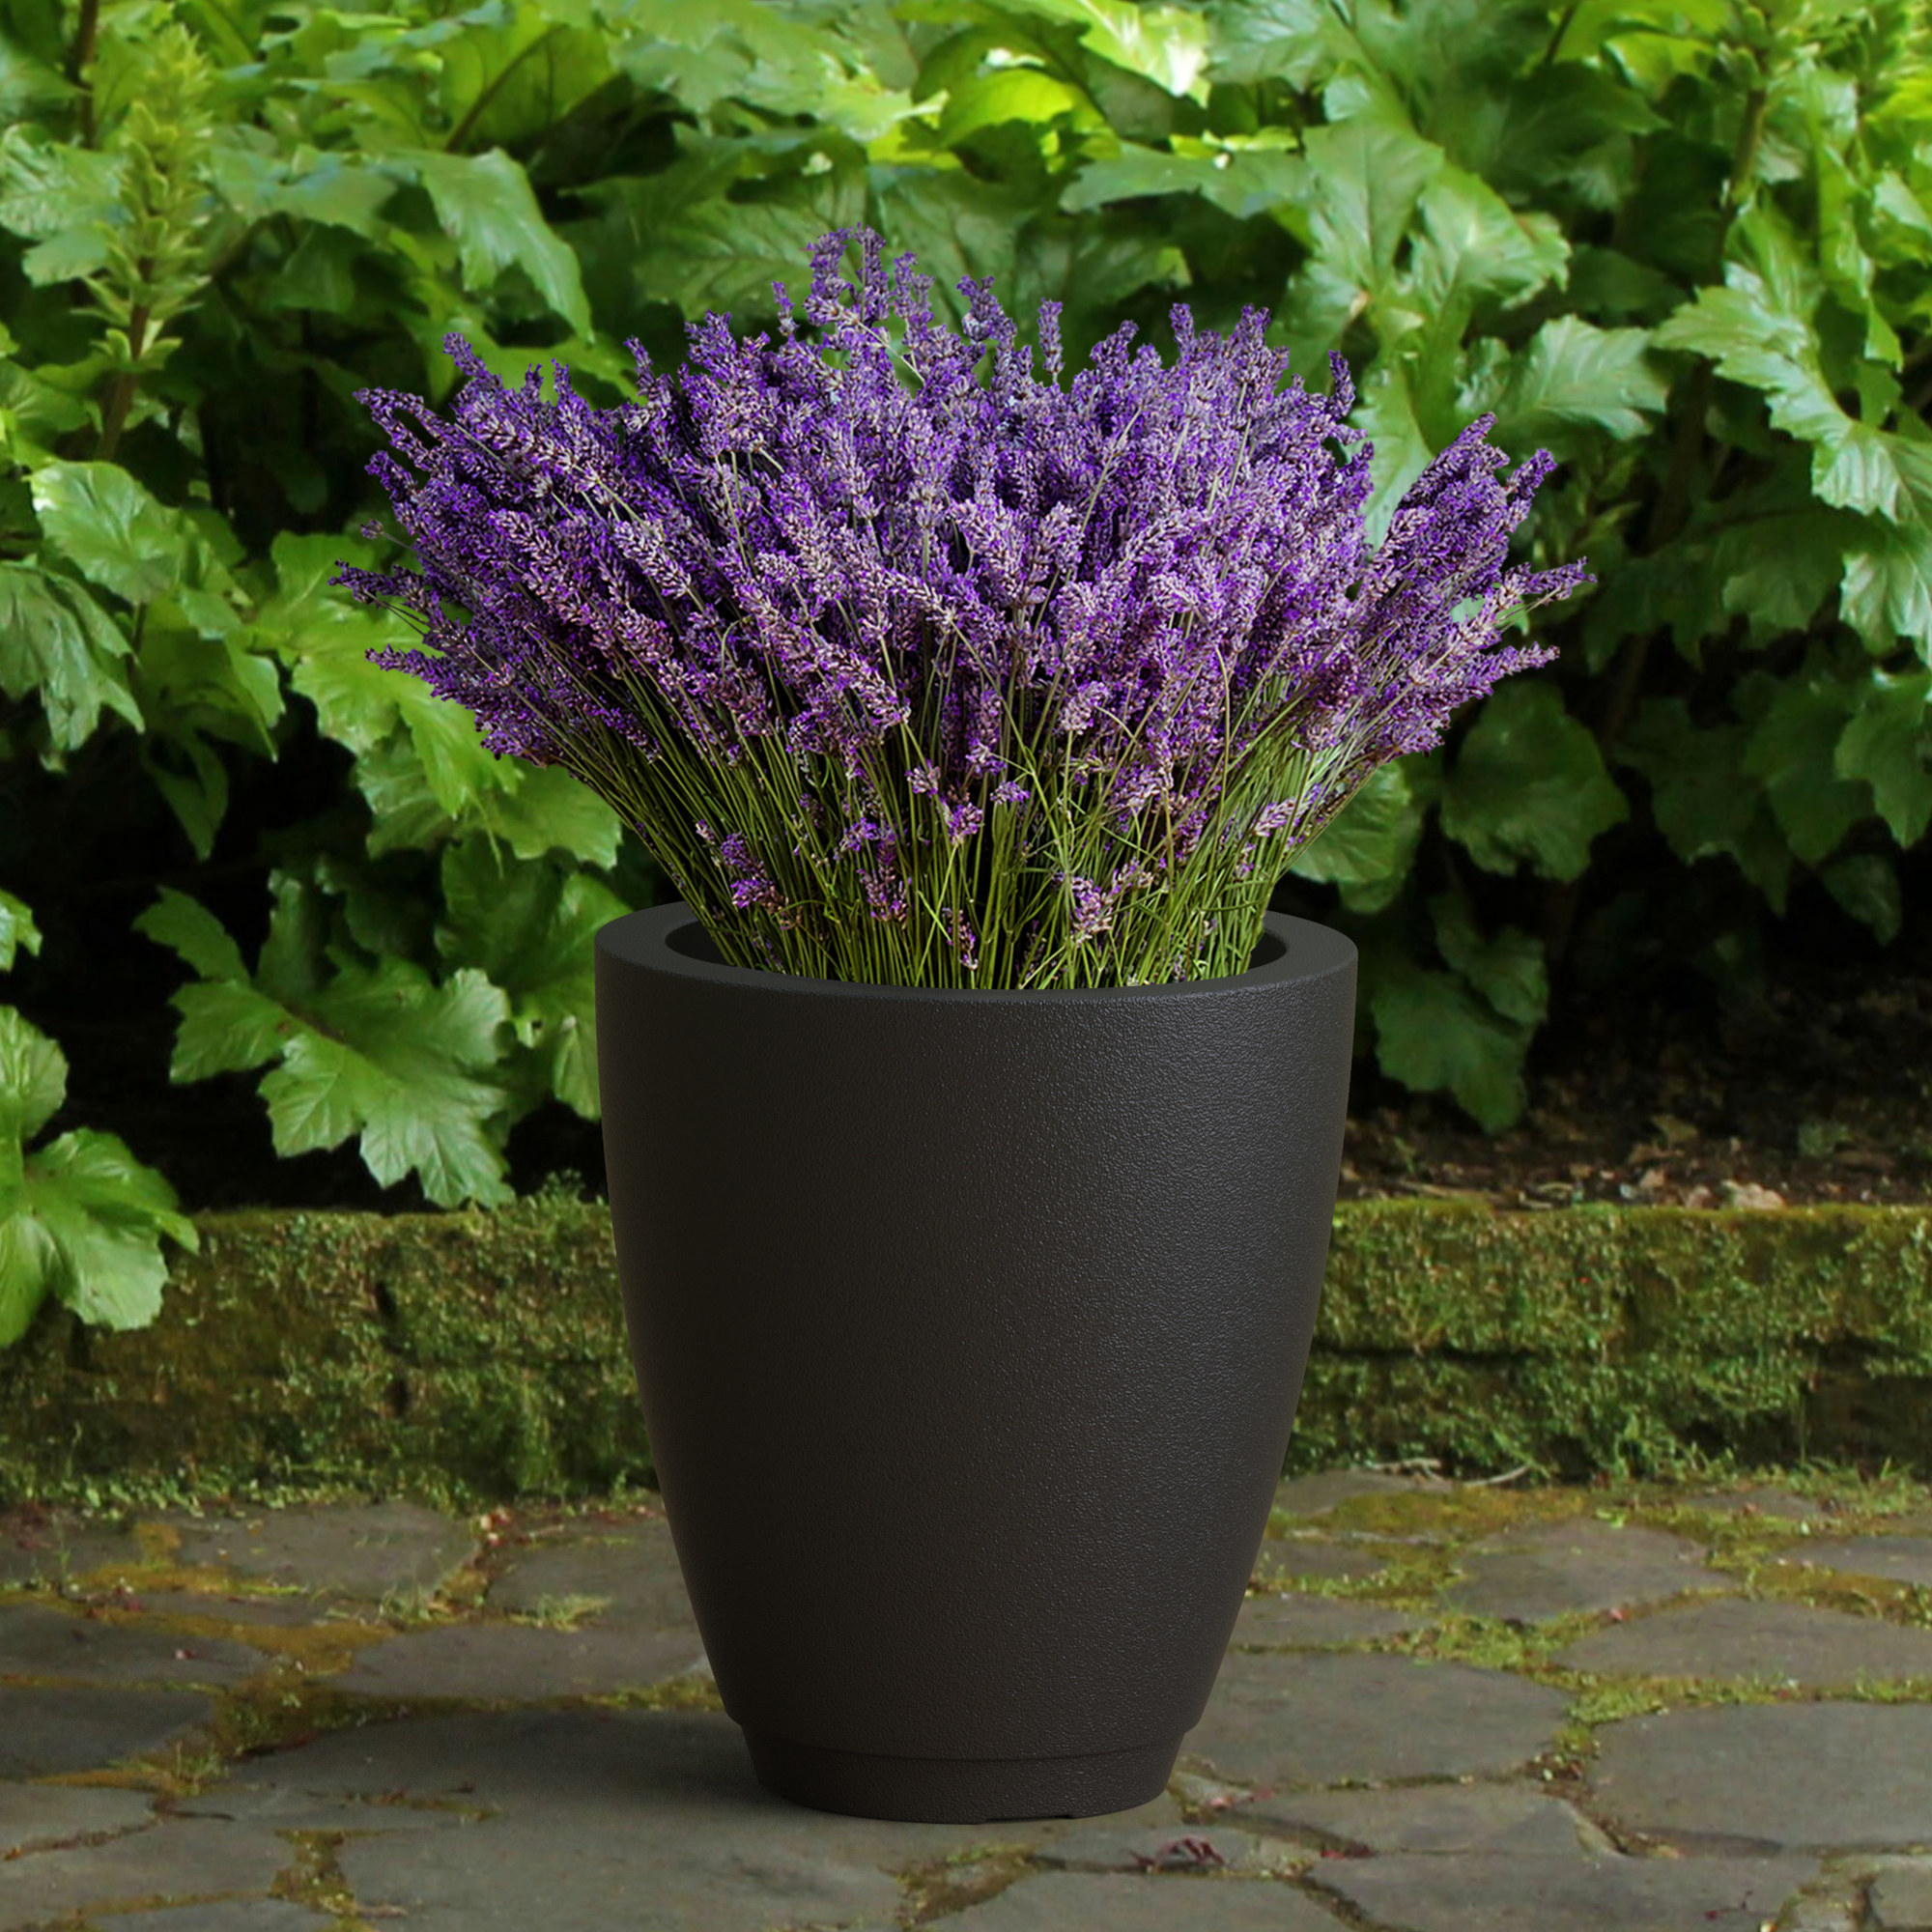 A tall, black, oval-shaped planter with purple flowers inside